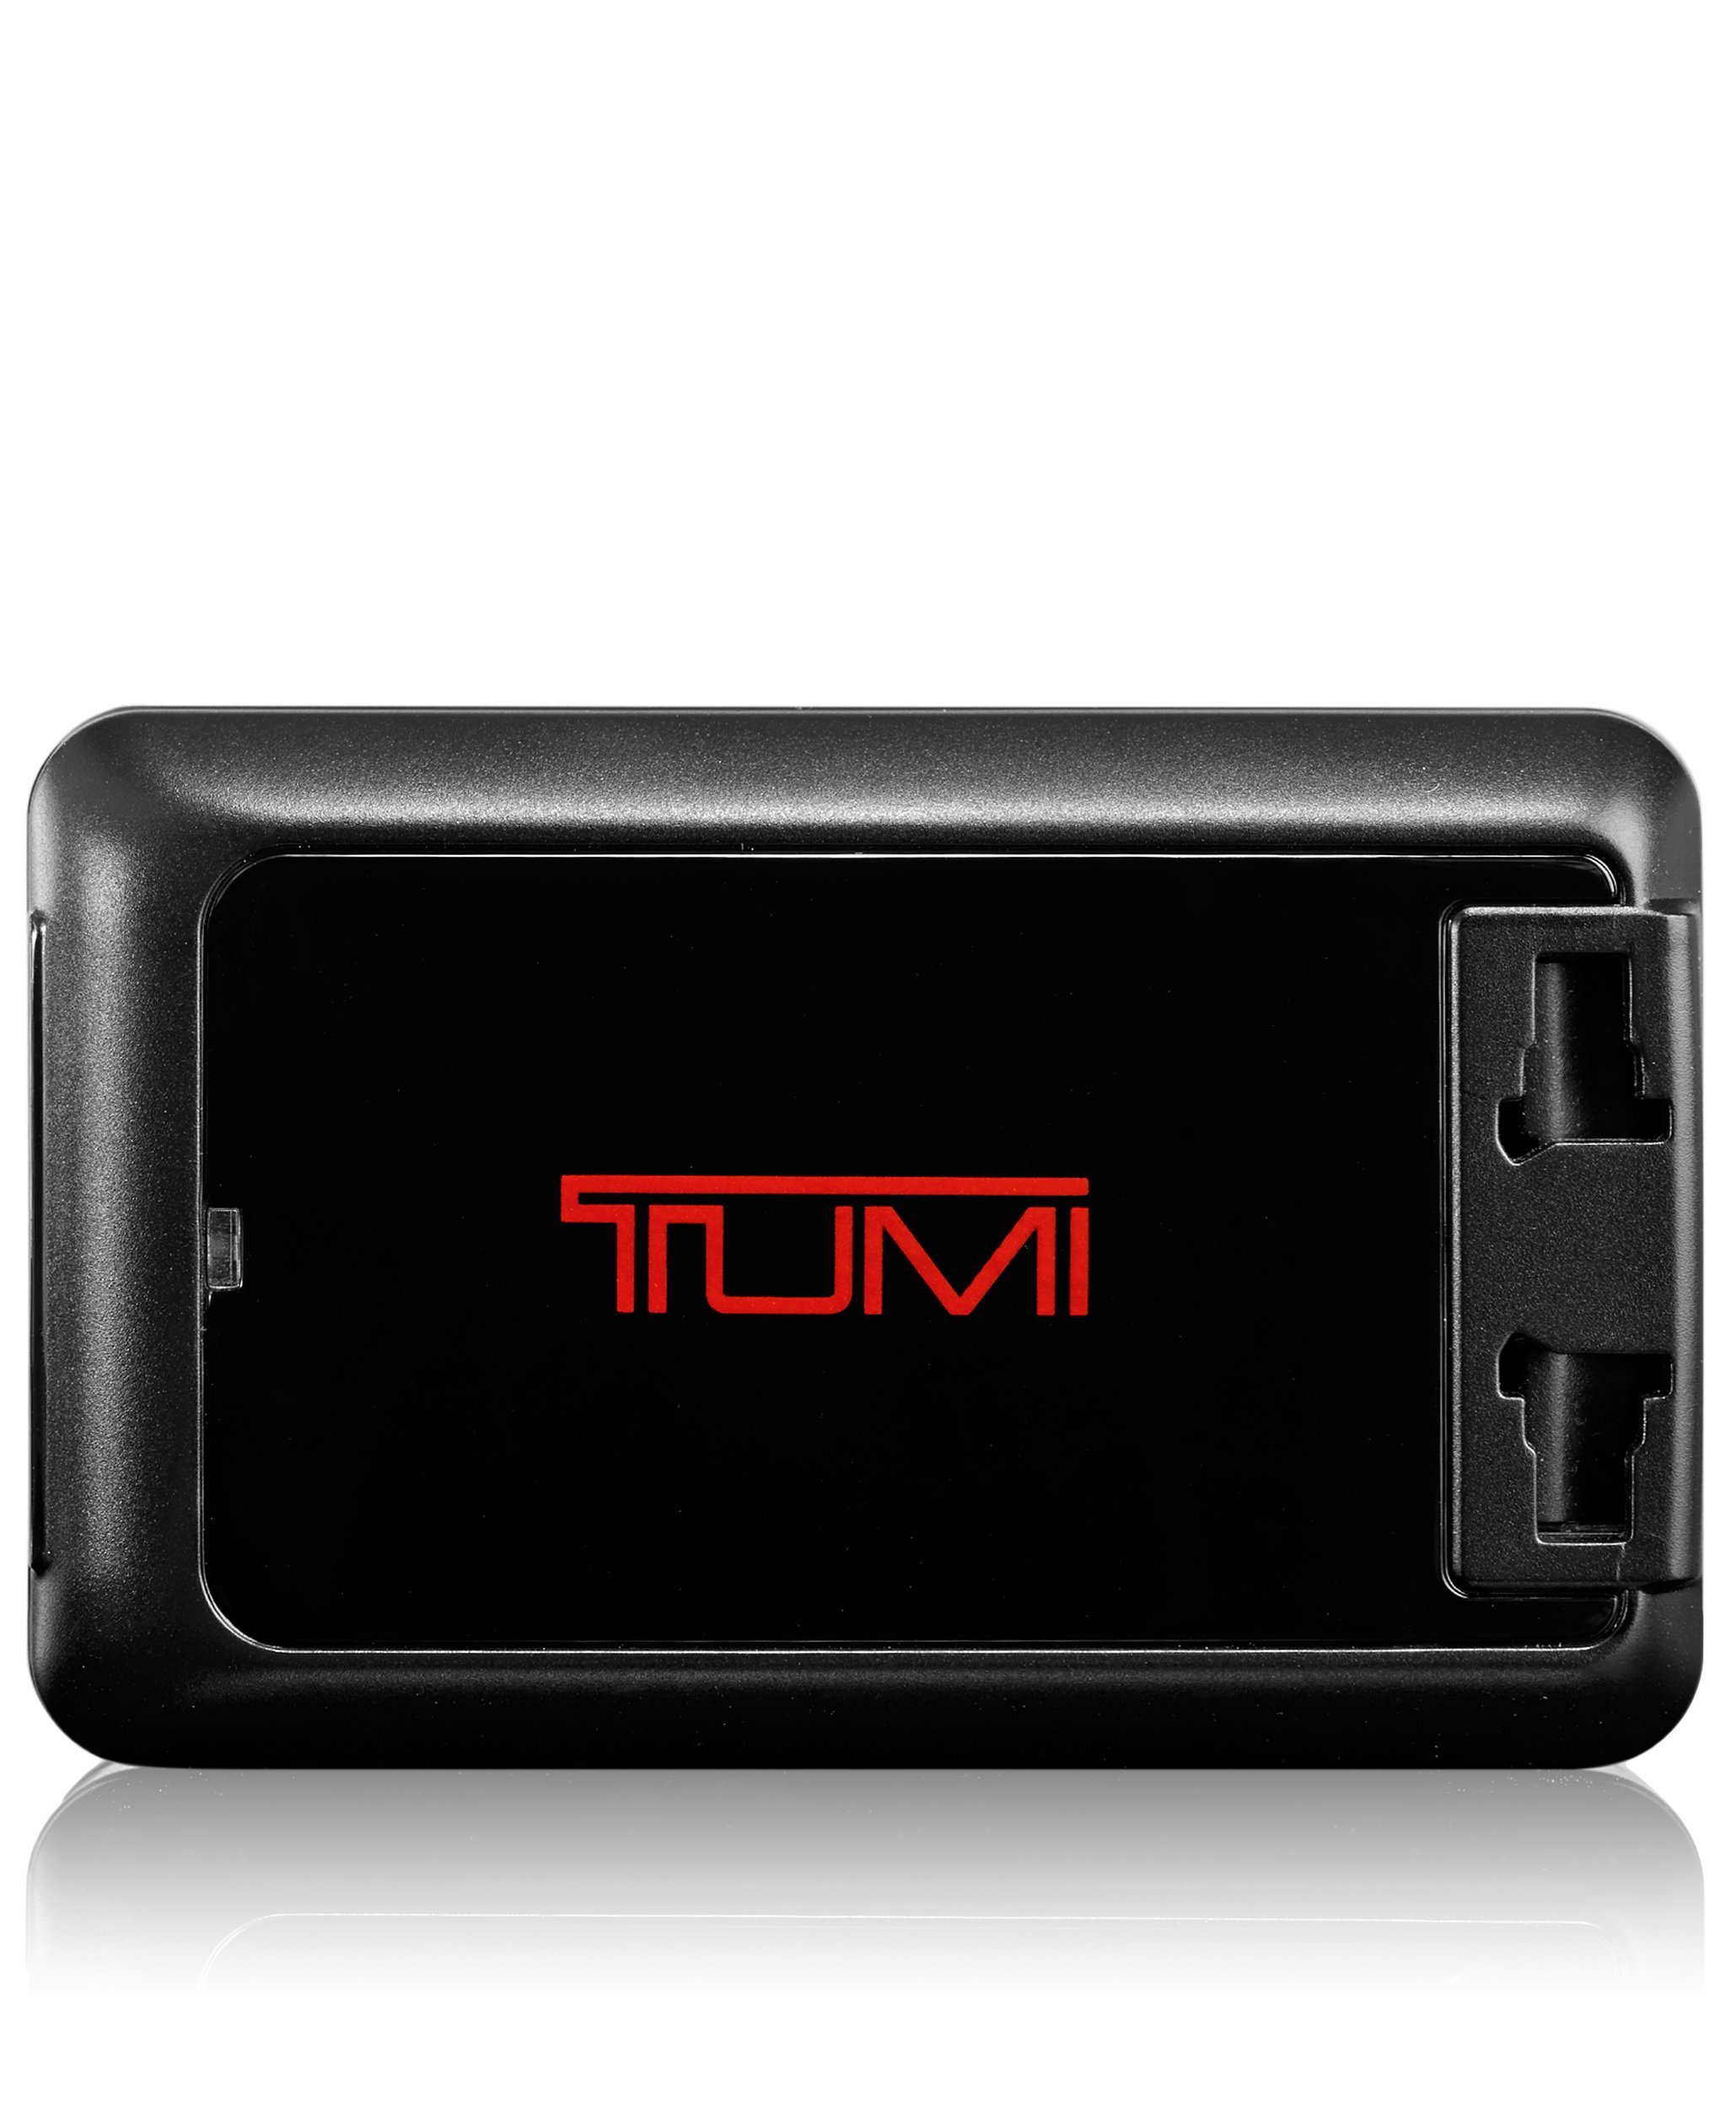 Tumi 4 Port USB Travel Adaptor, Black, One Size